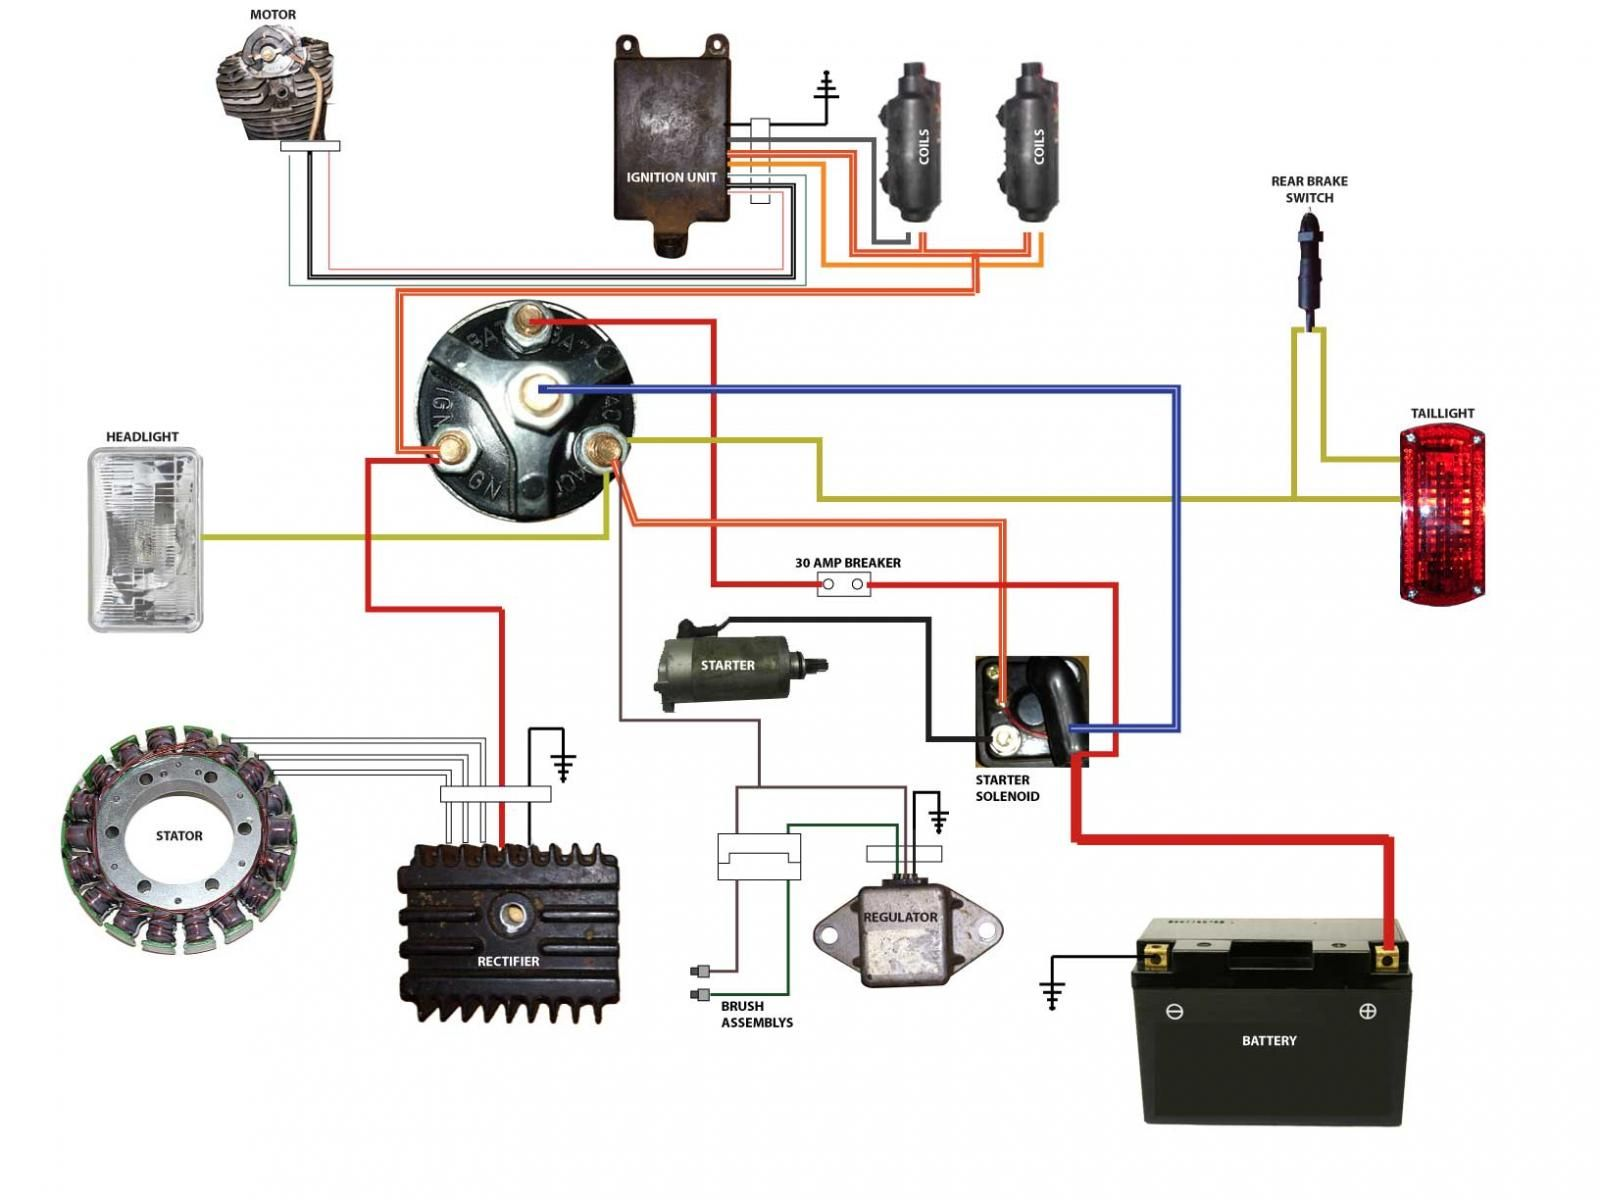 simplified wiring diagram for xs400 cafe | Projects to Try ... on